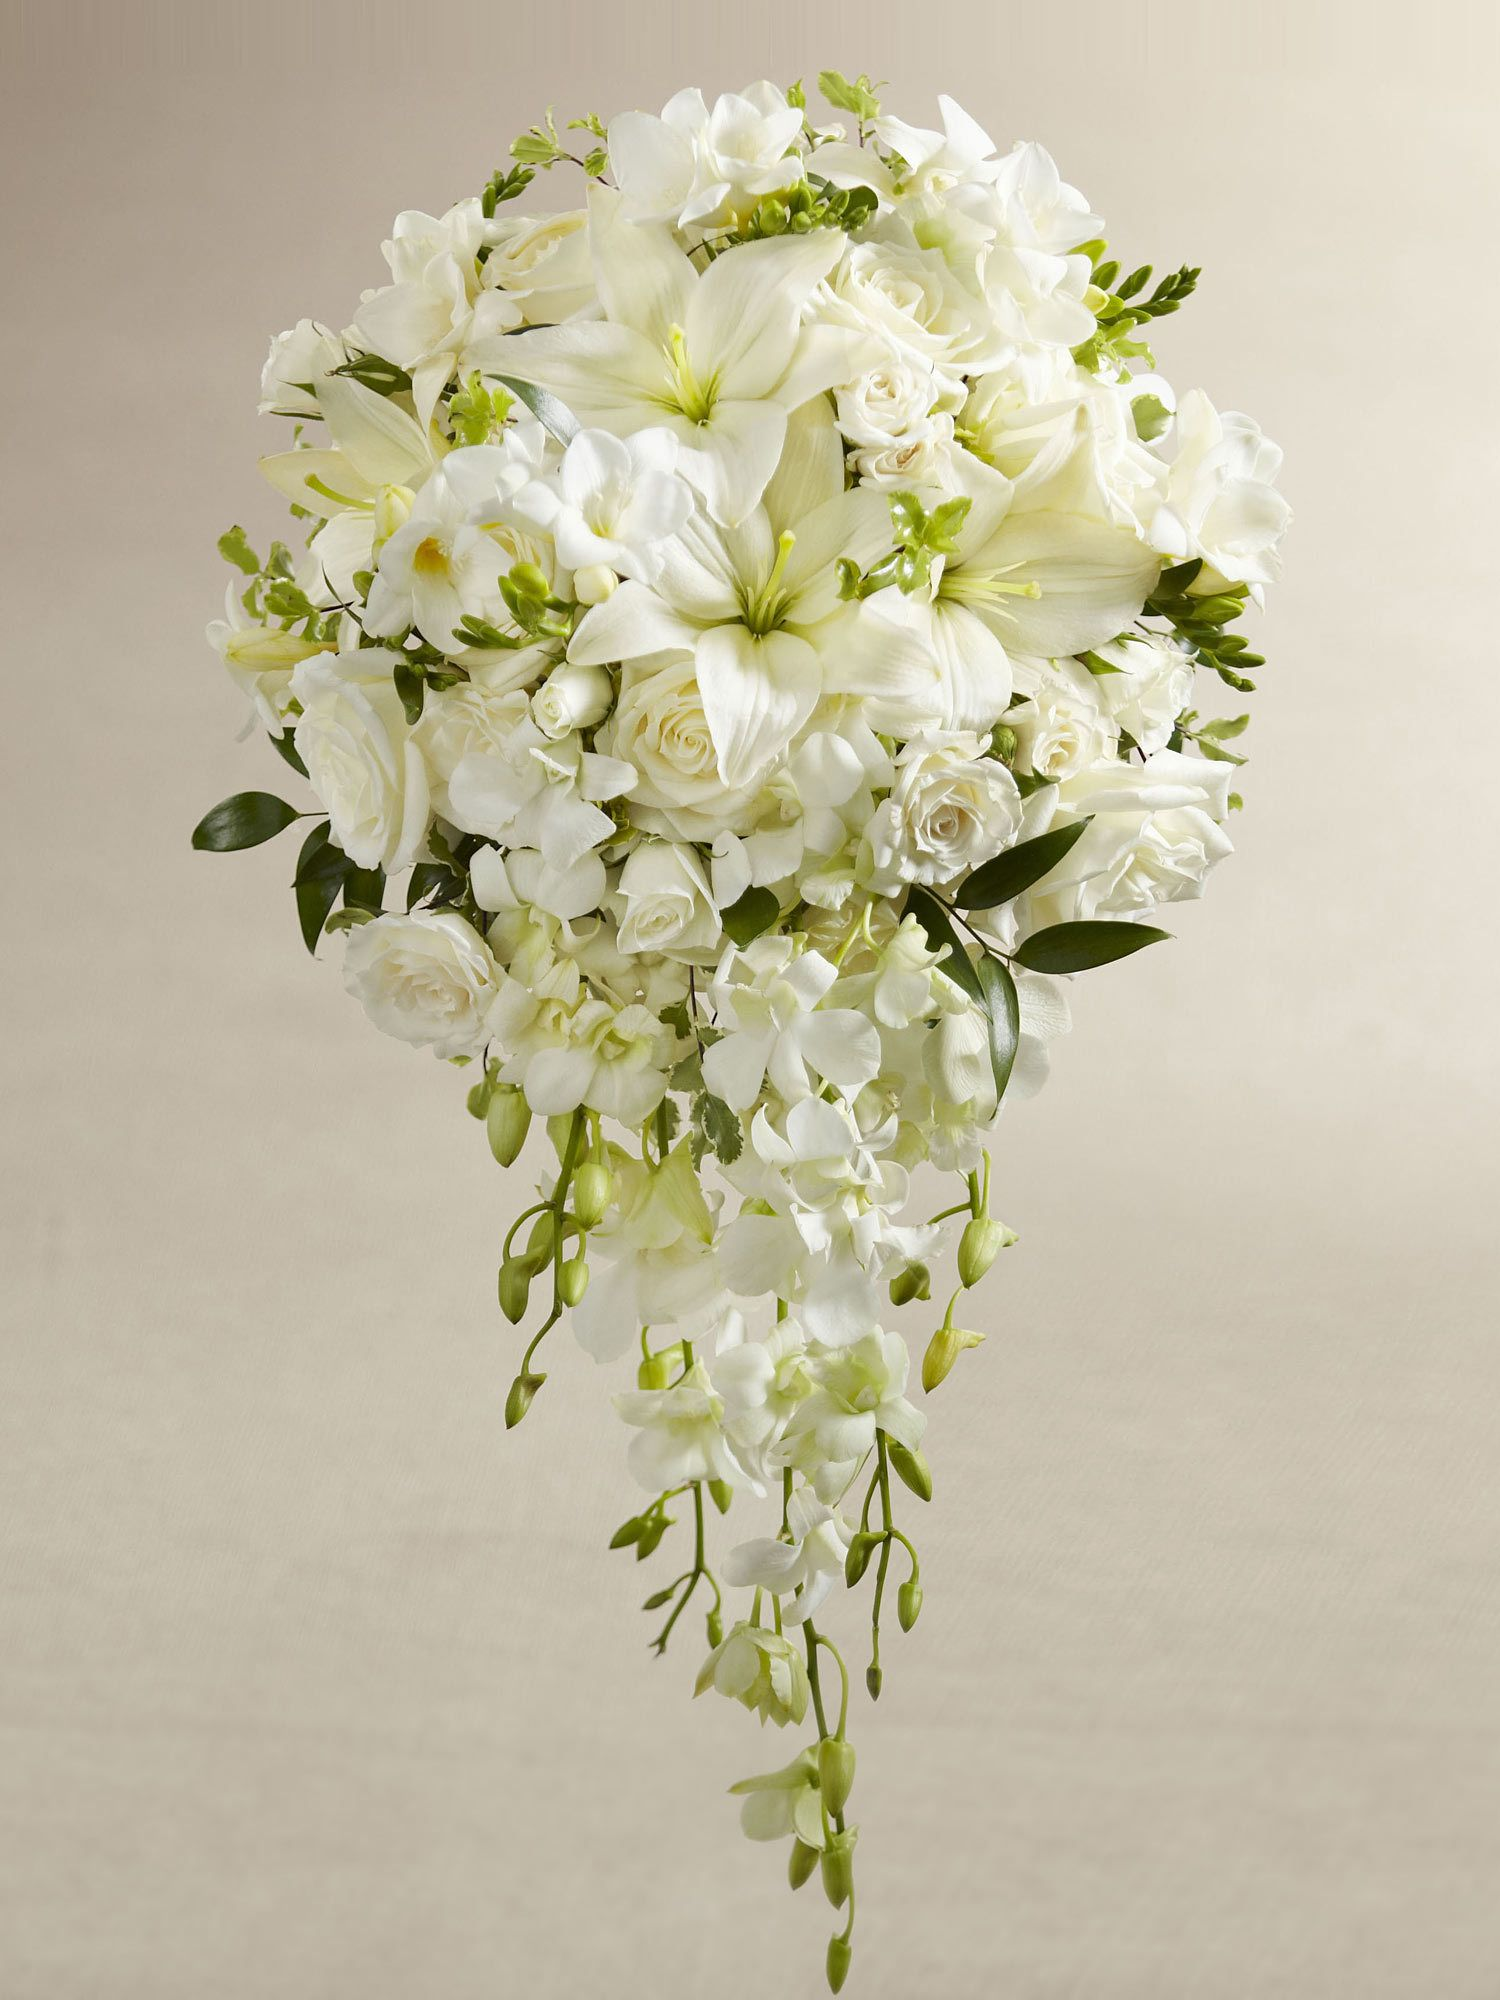 Explore White Wedding Flowers And More